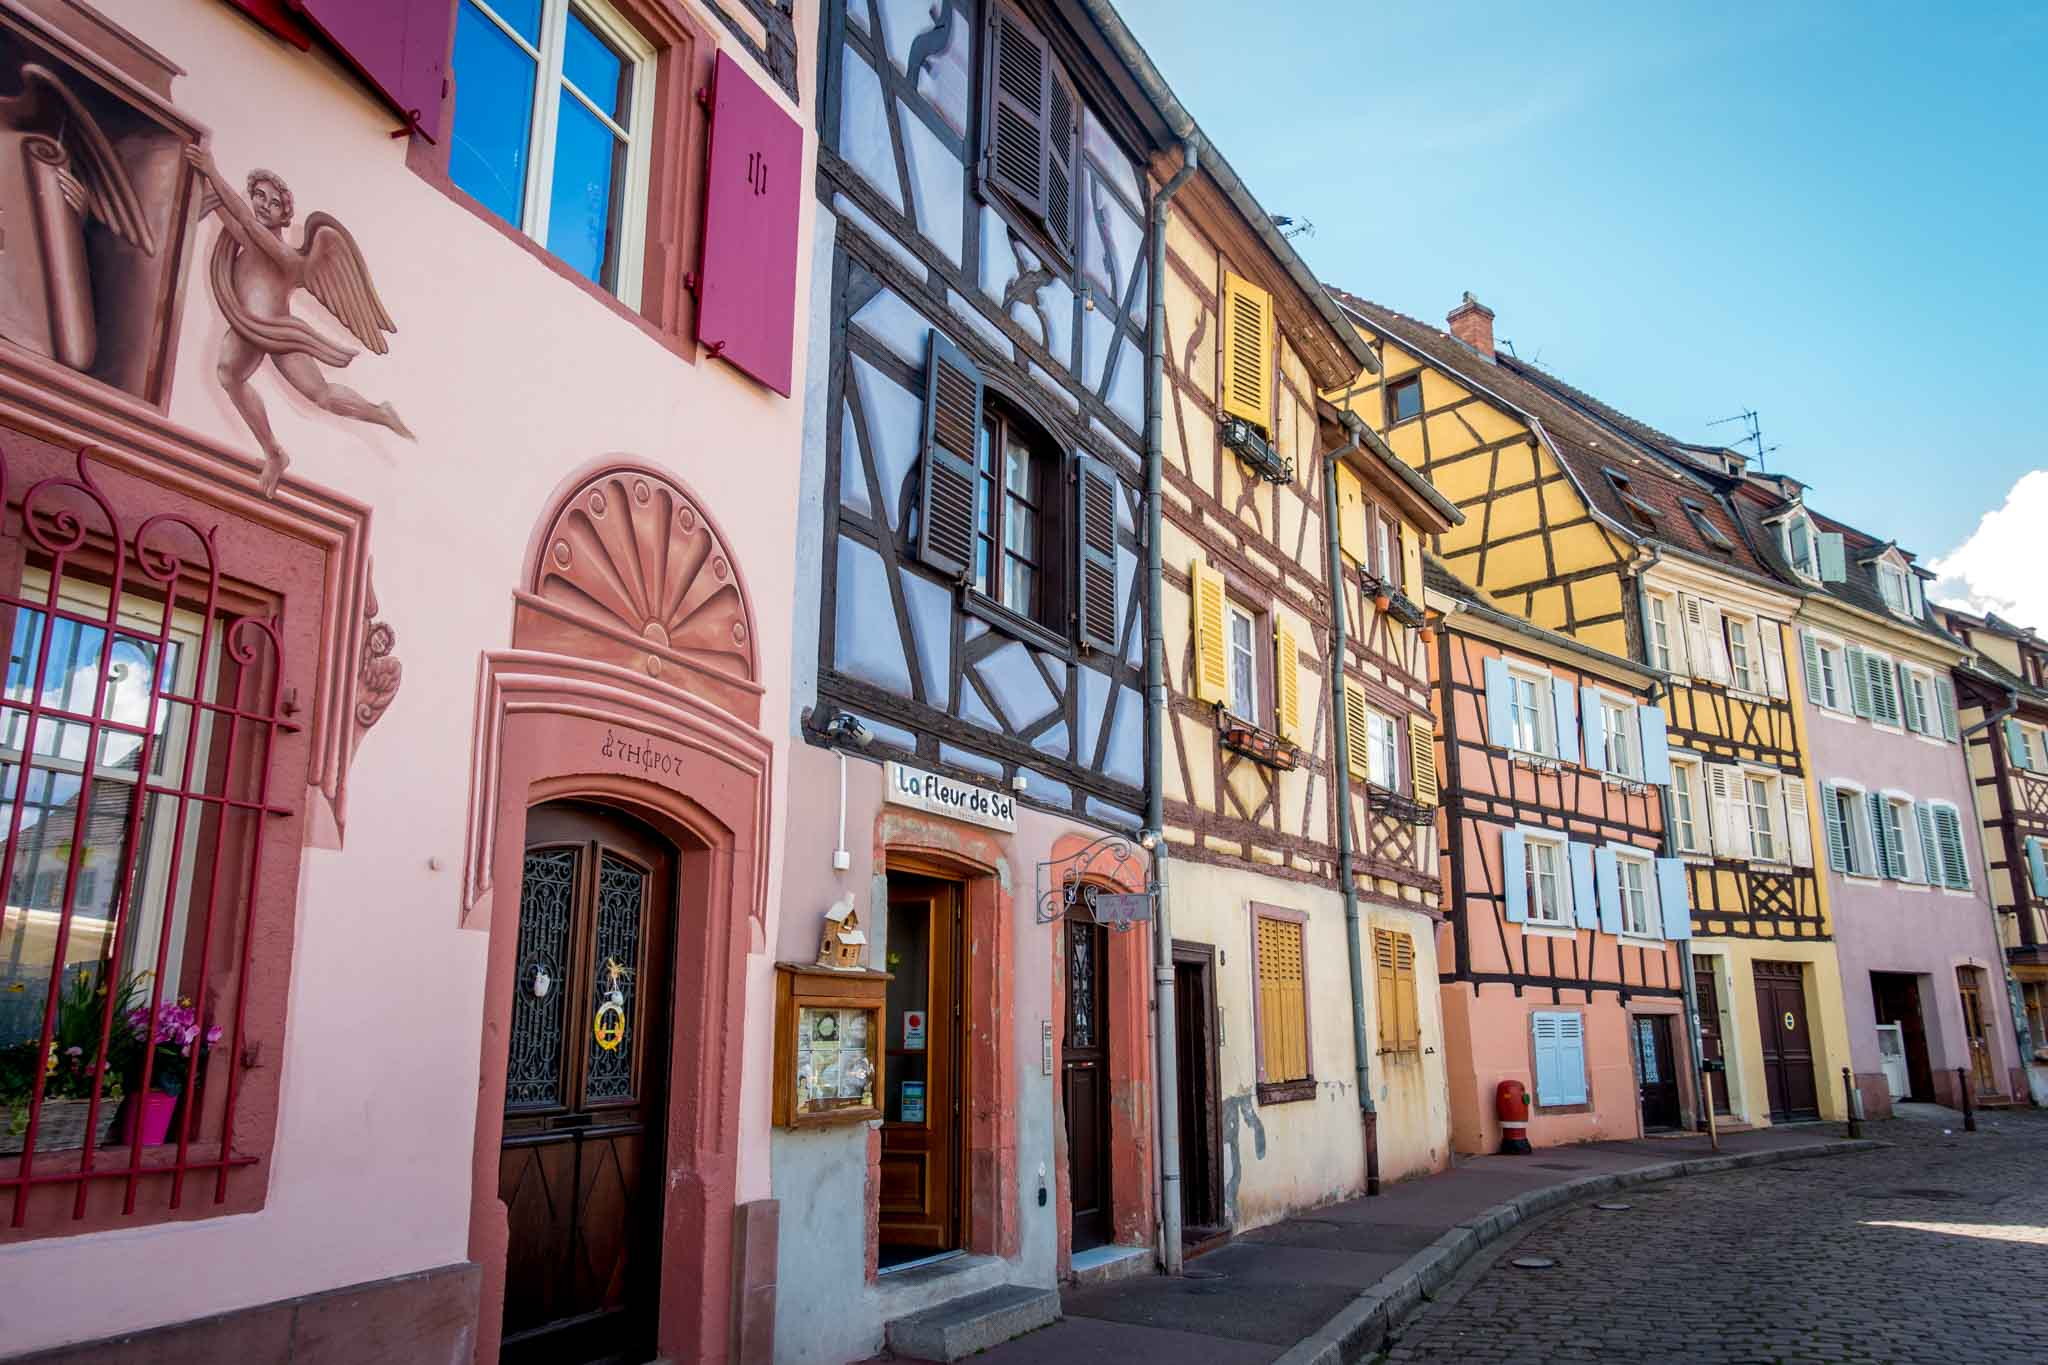 Row of half-timbered buildings painted pink, purple, and yellow